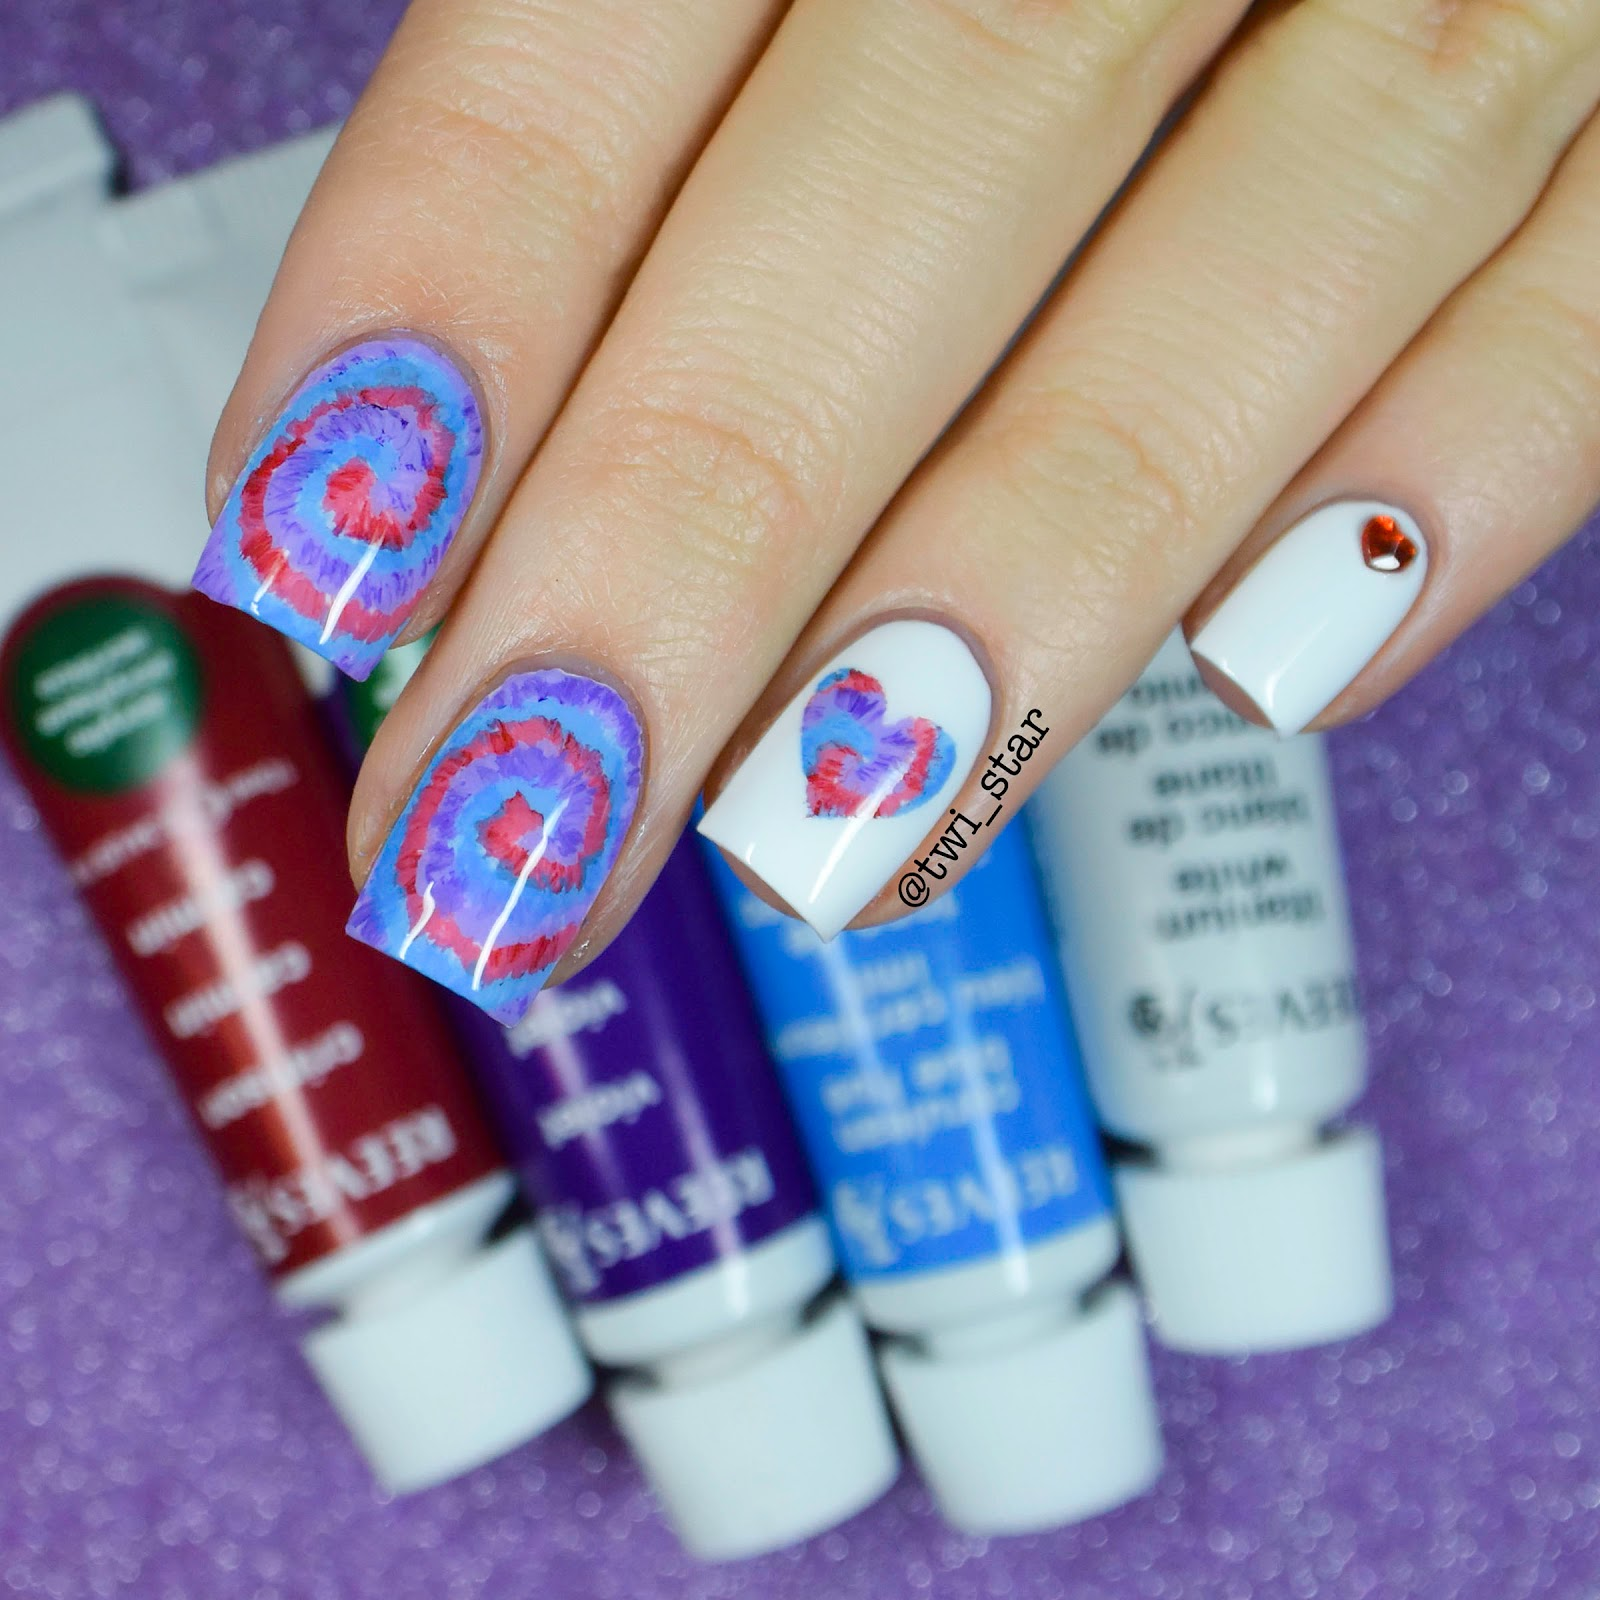 twi-star | Nail Art Blog: Tie-Dye Acrylic Paint Nail Art!